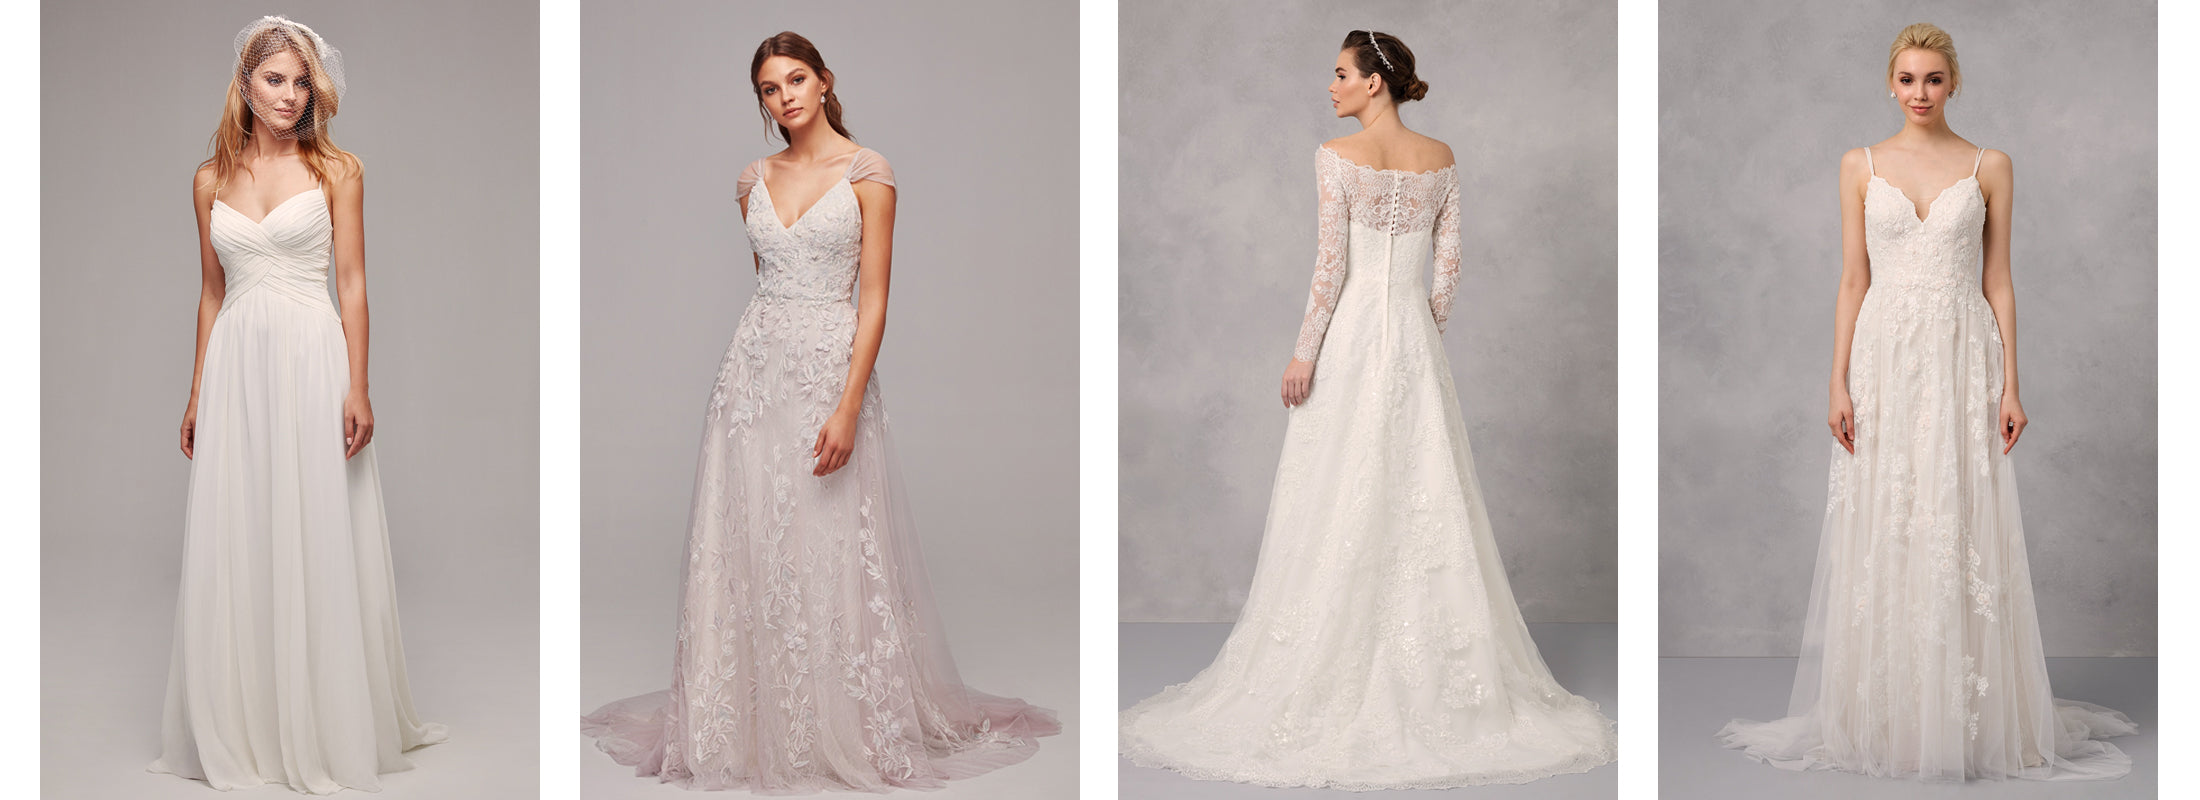 Oleg Cassini A-line wedding dresses - Finding the perfect dress